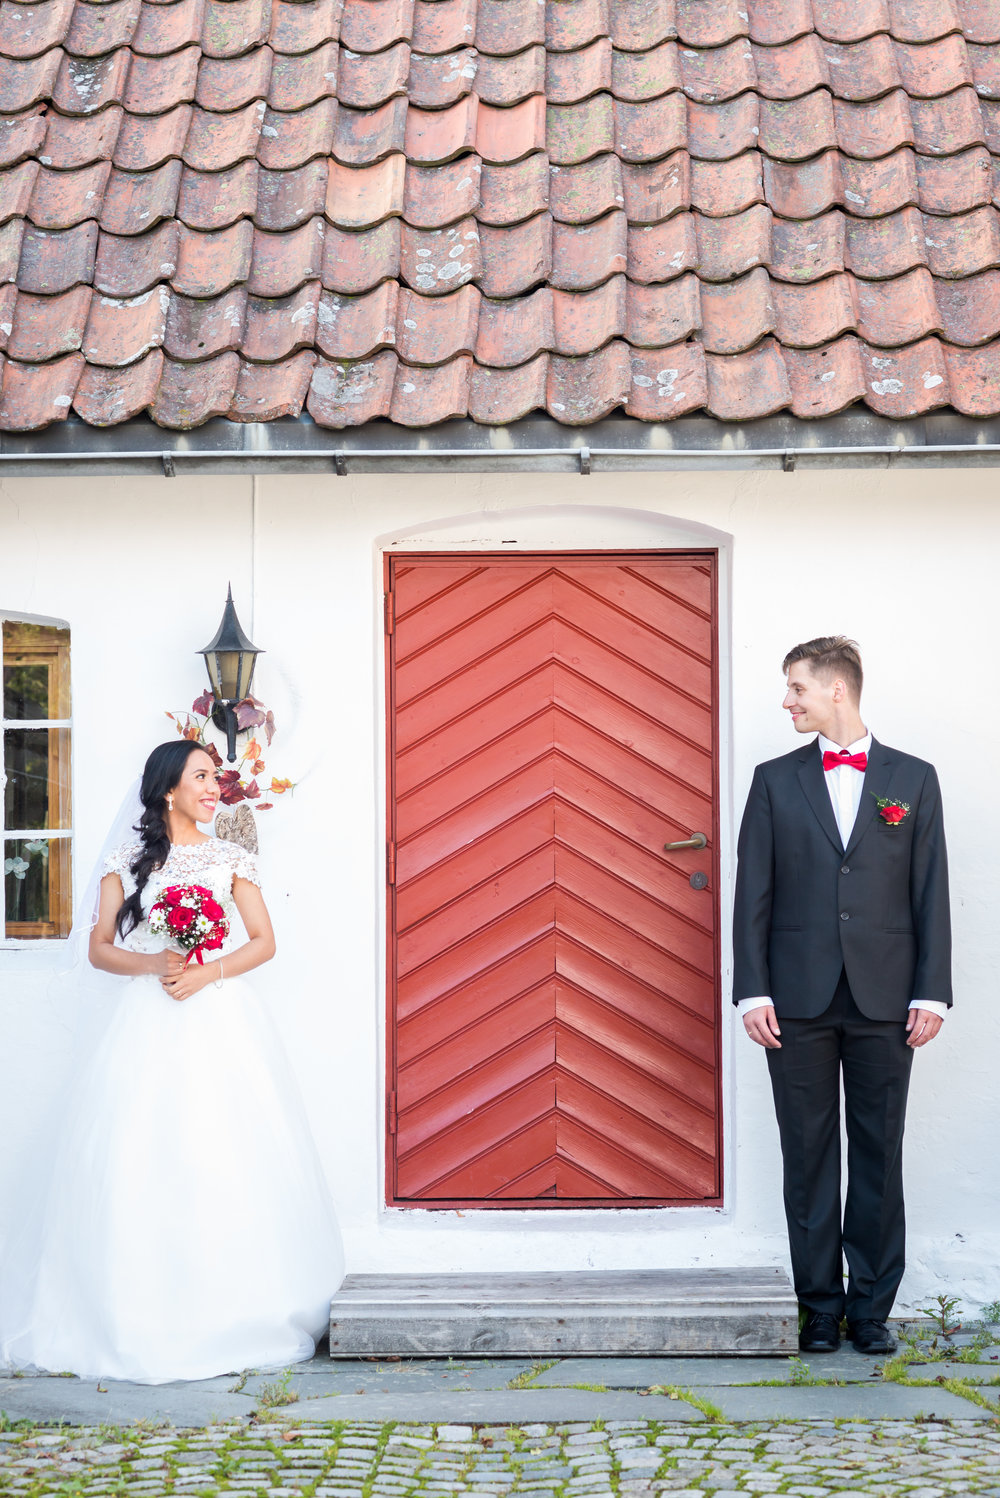 Bride and groom with a red door Stavanger wedding Guillem Cheung Bryllup